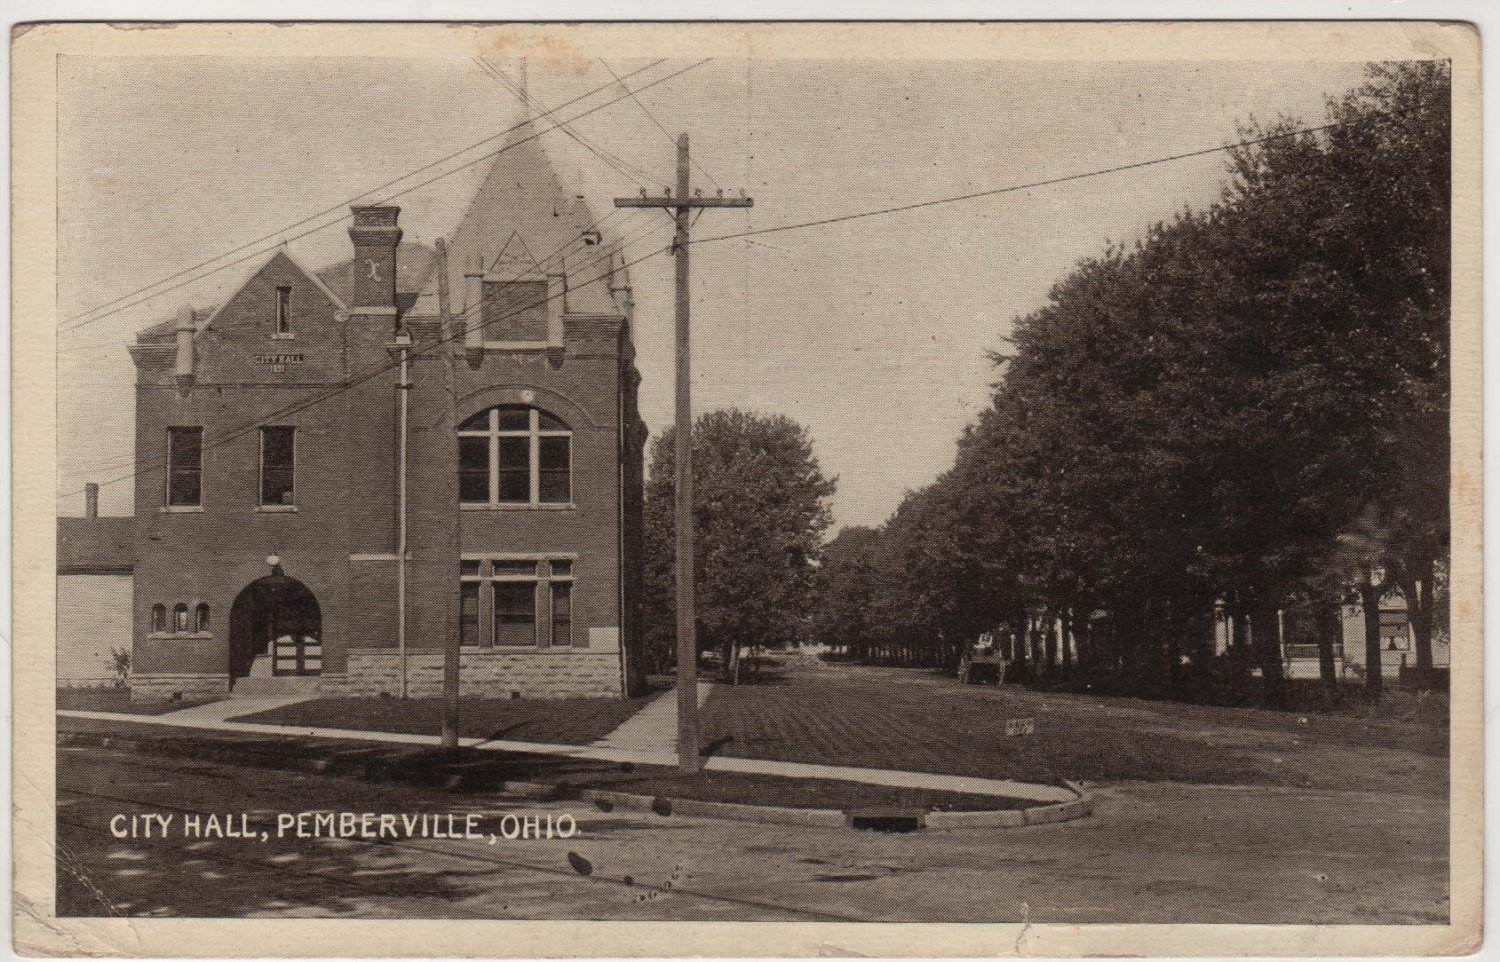 Pemberville Ohio Postcard, City Hall Building and Grounds c.1910